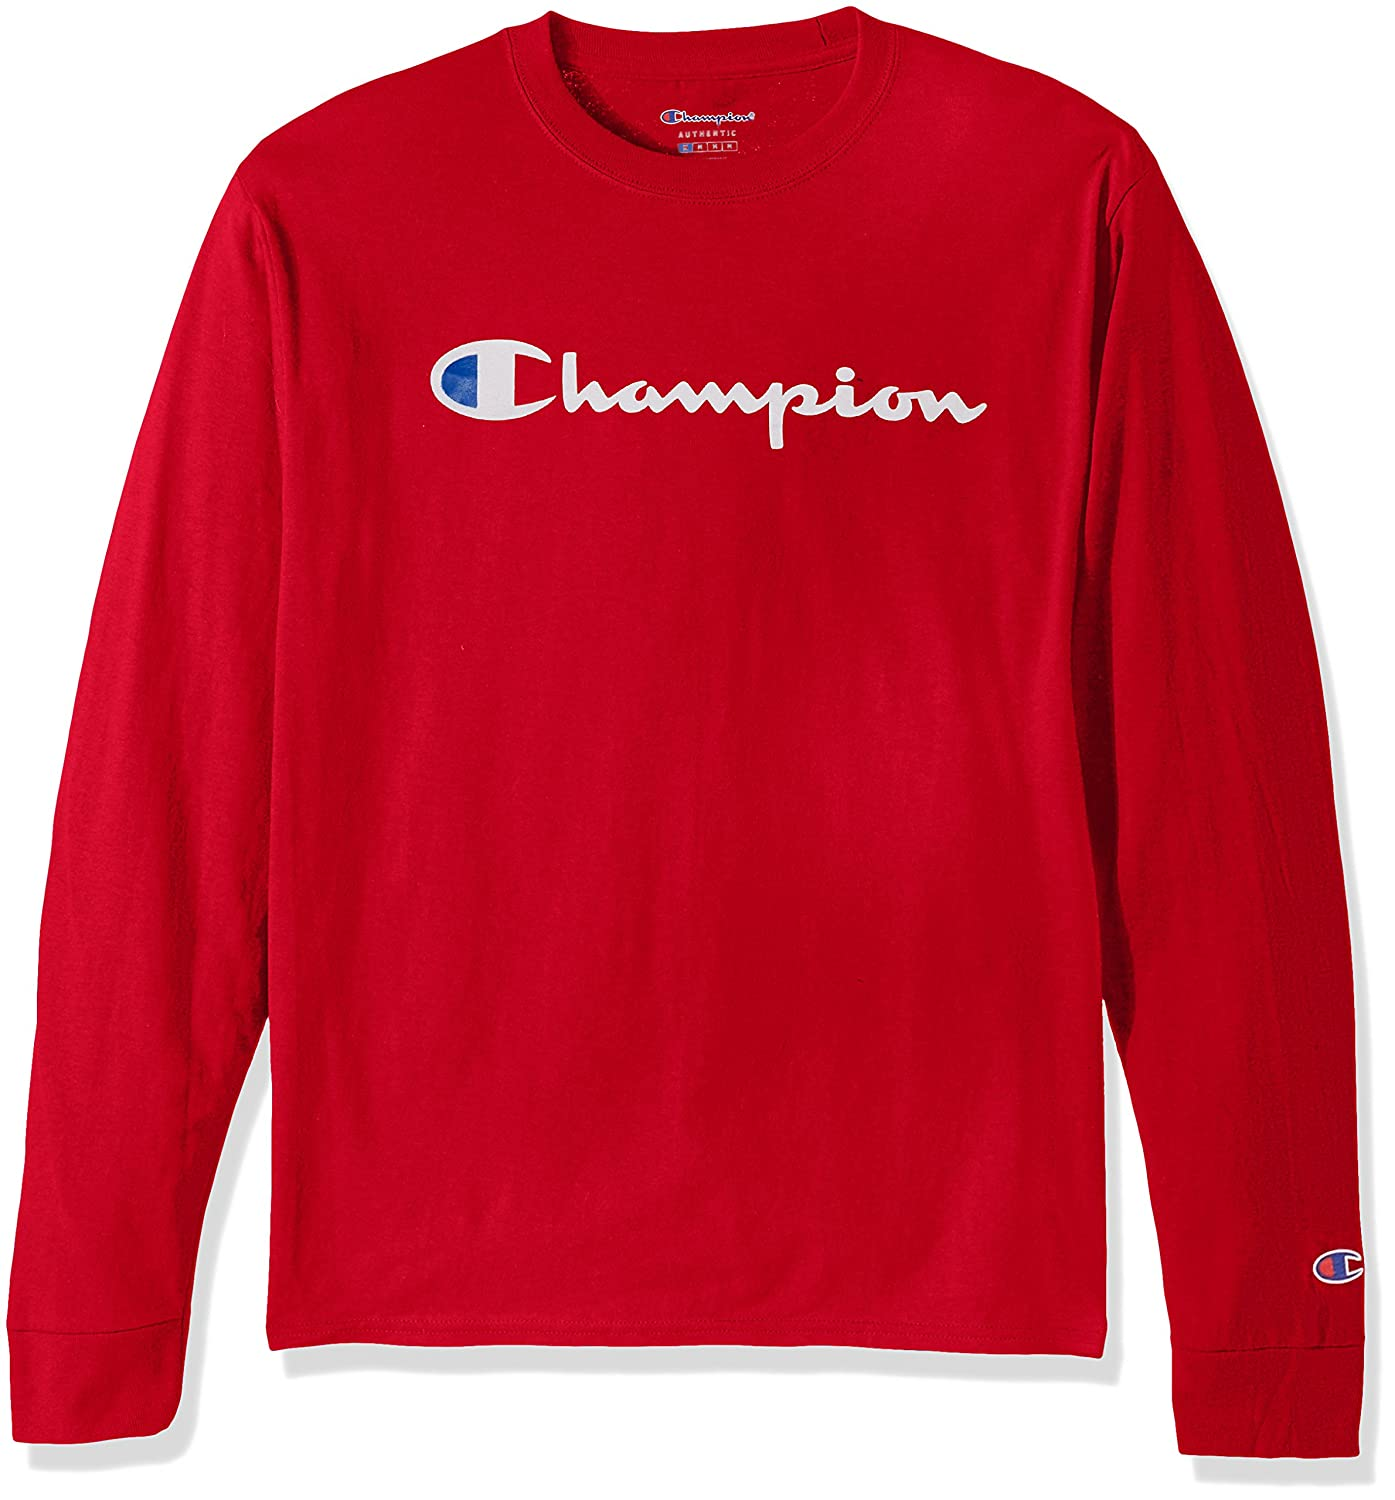 f8310975a Amazon.com: Champion LIFE Men's Cotton Long Sleeve Tee: Clothing